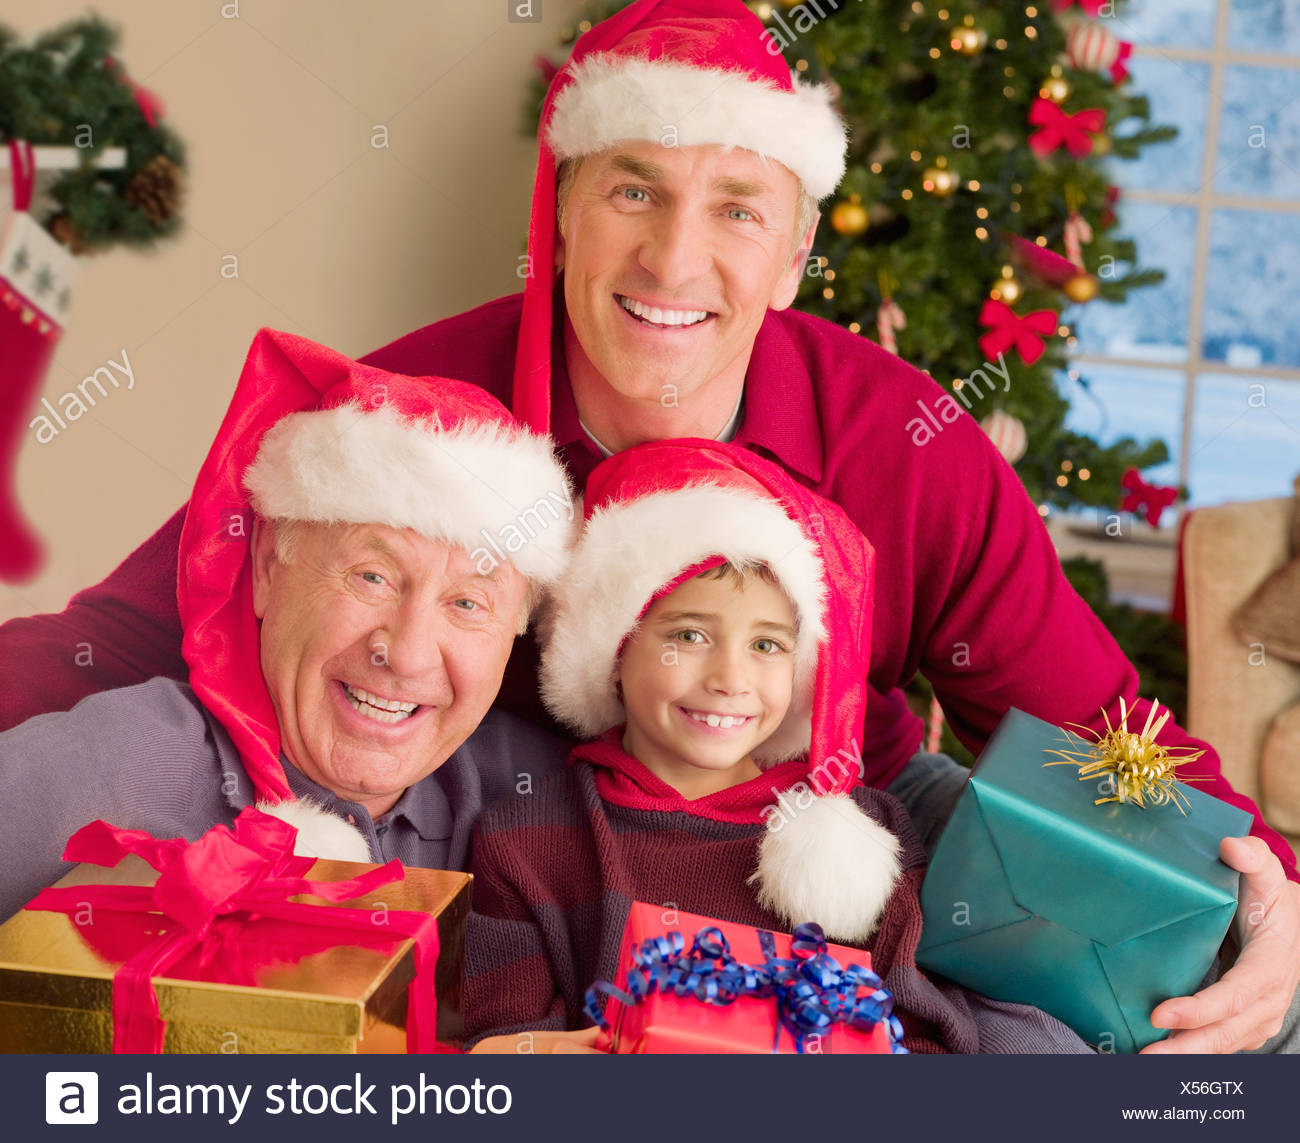 Multi Generation Family Wearing Santa Hats And Holding Christmas Gifts